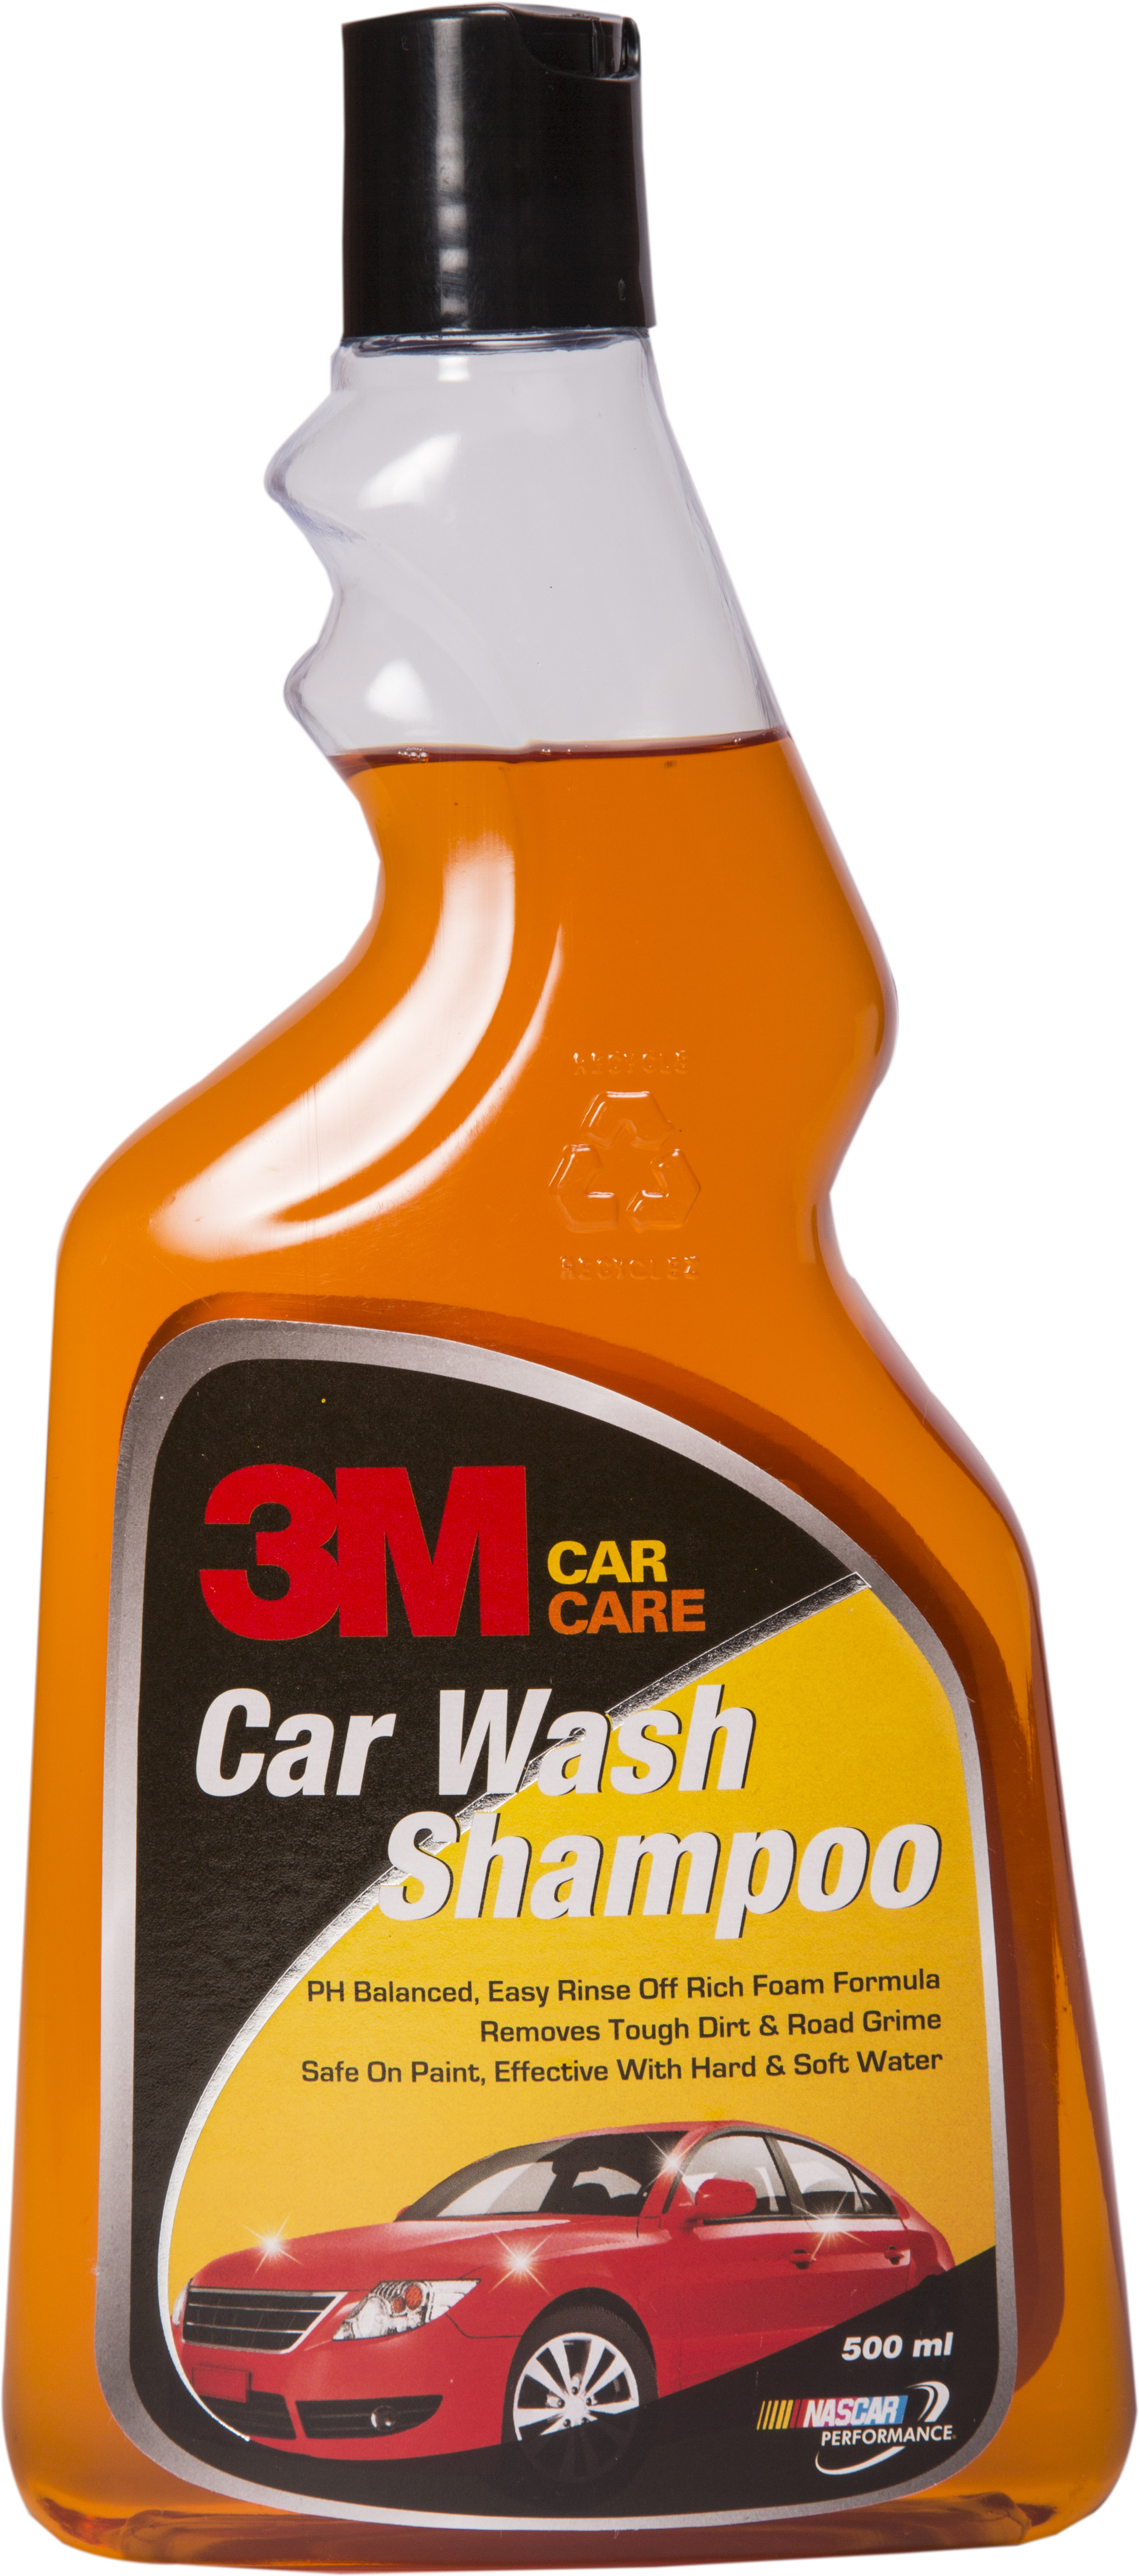 Shampoo For Car Wash In India